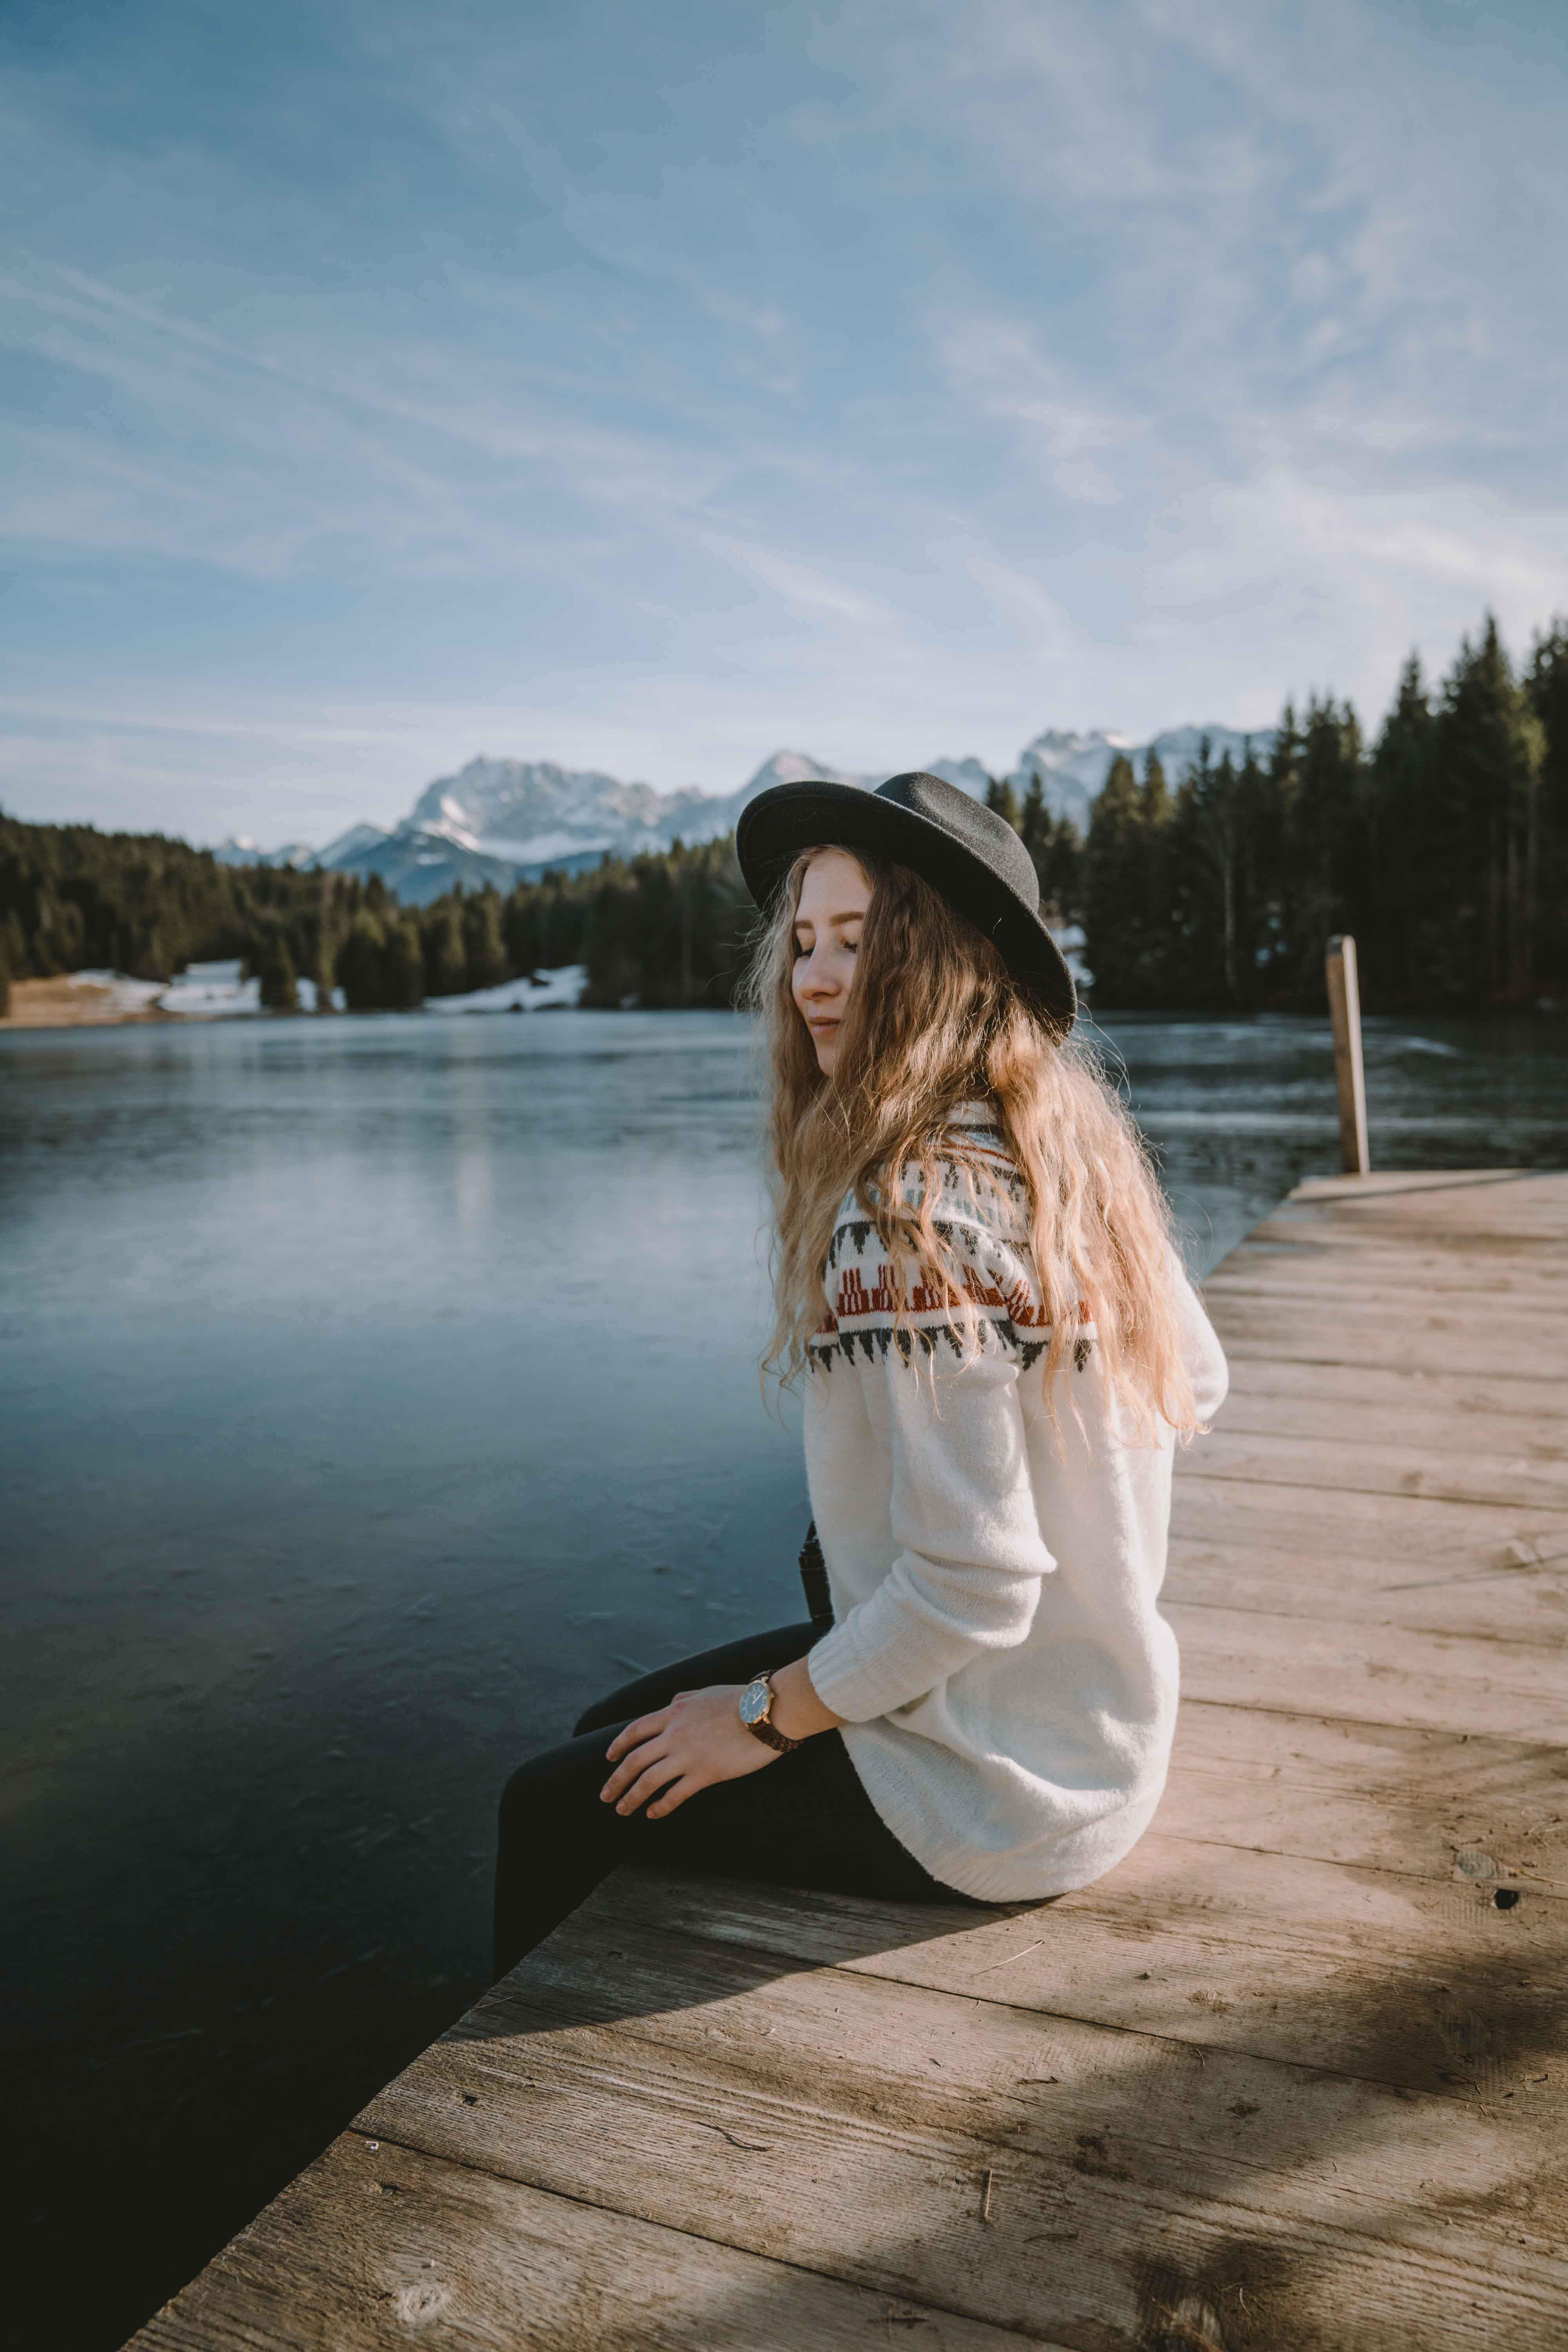 Girl sitting by the lake wearing a hat smiling